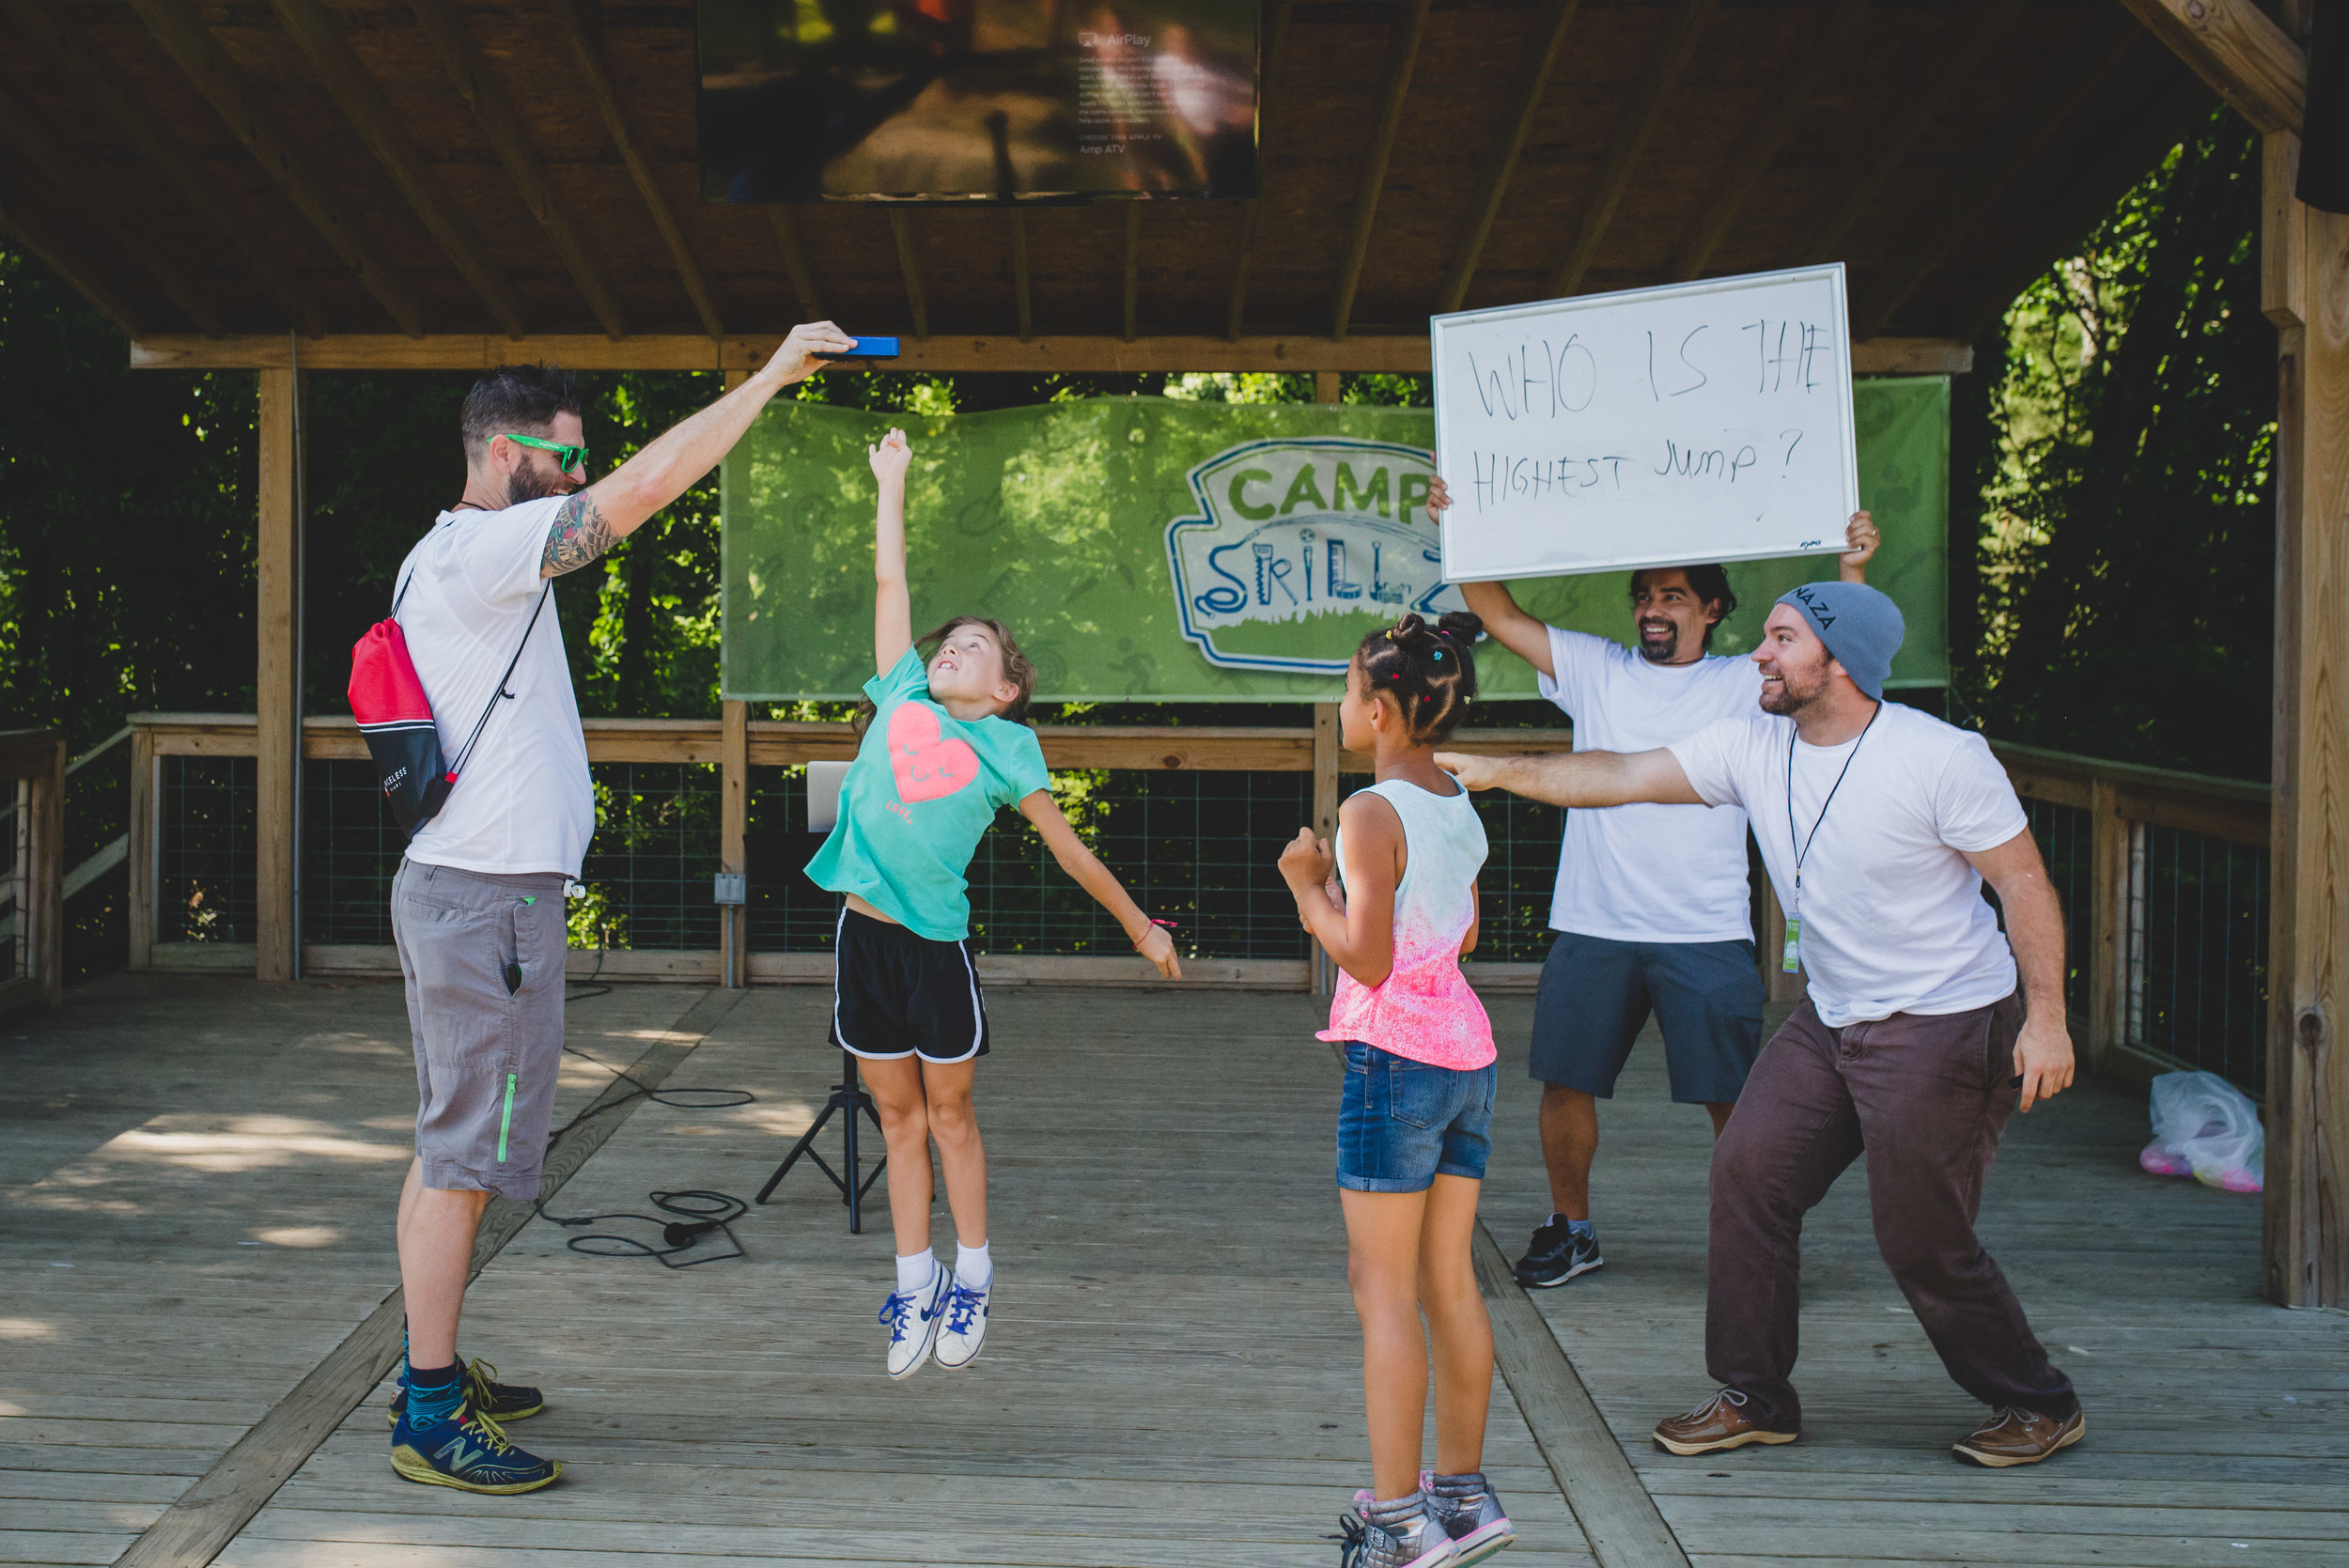 """Academy parent and volunteer extraordinaire John Edmondson helps facilitate camper contests at the Camp Skillz kick off, measuring """"how high,"""" followed by how fast and how strong, from the Camp Skillz motto: Higher, Stronger, Faster."""